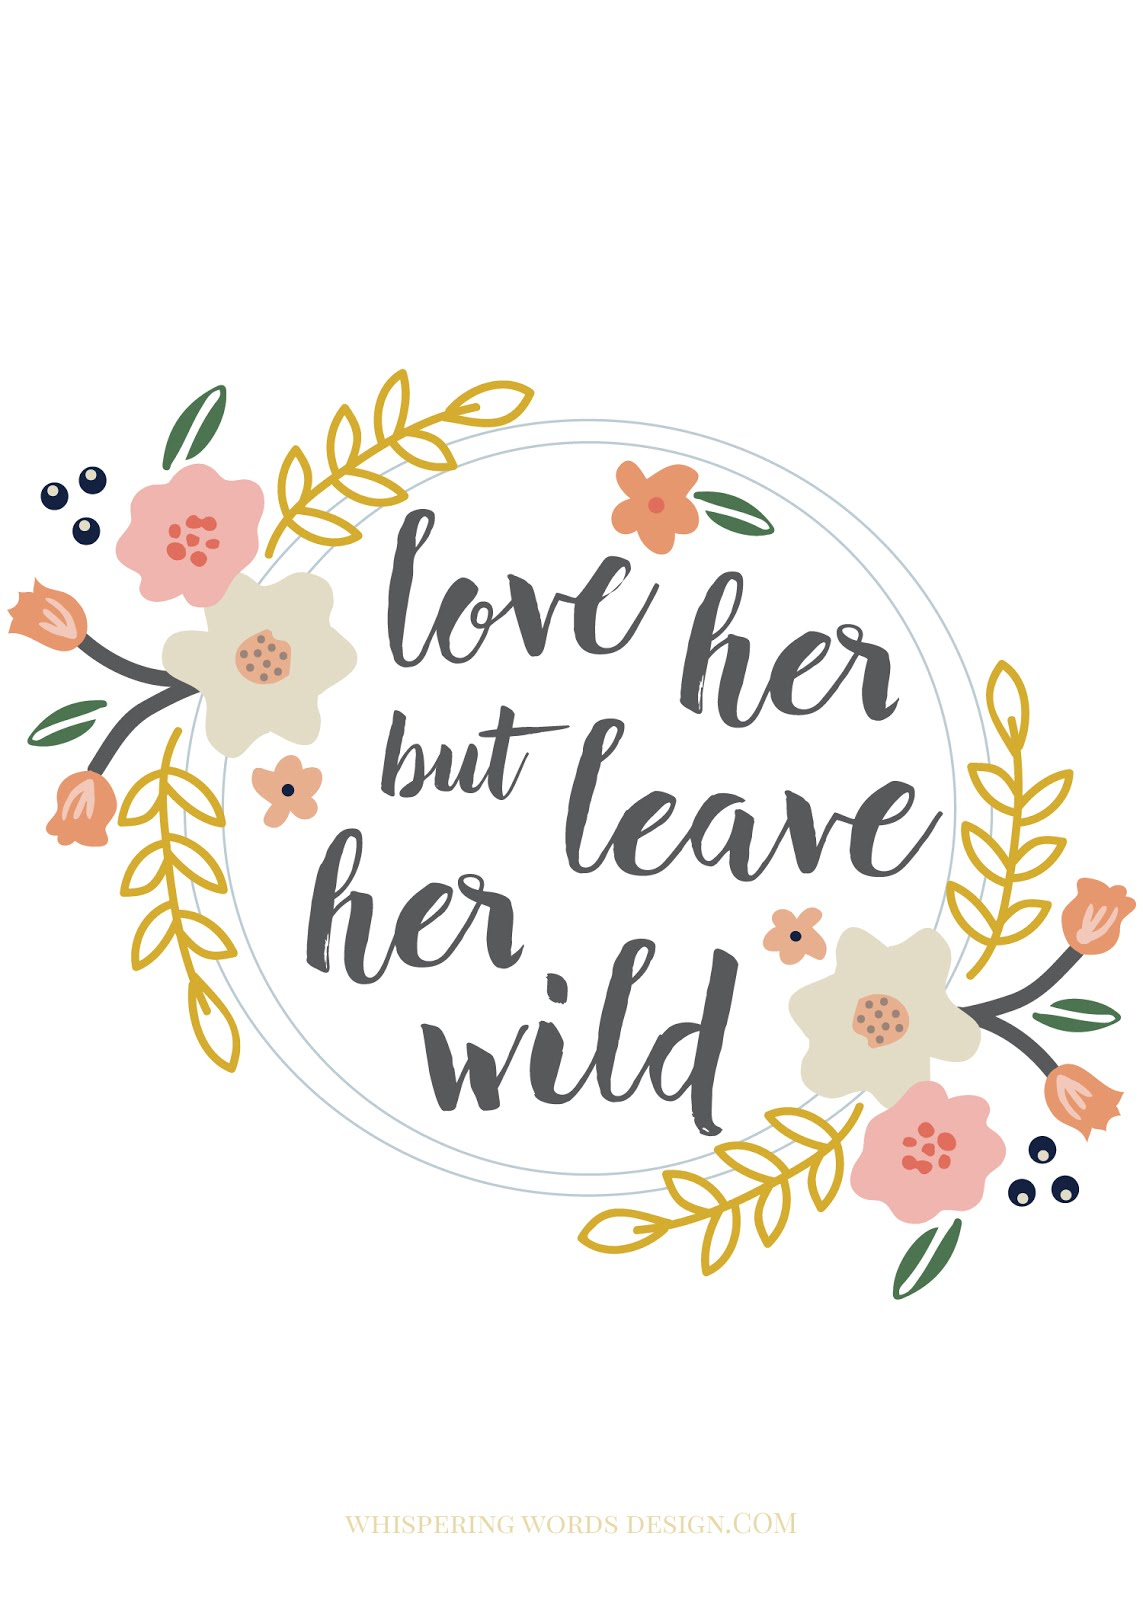 ... leave her wild.